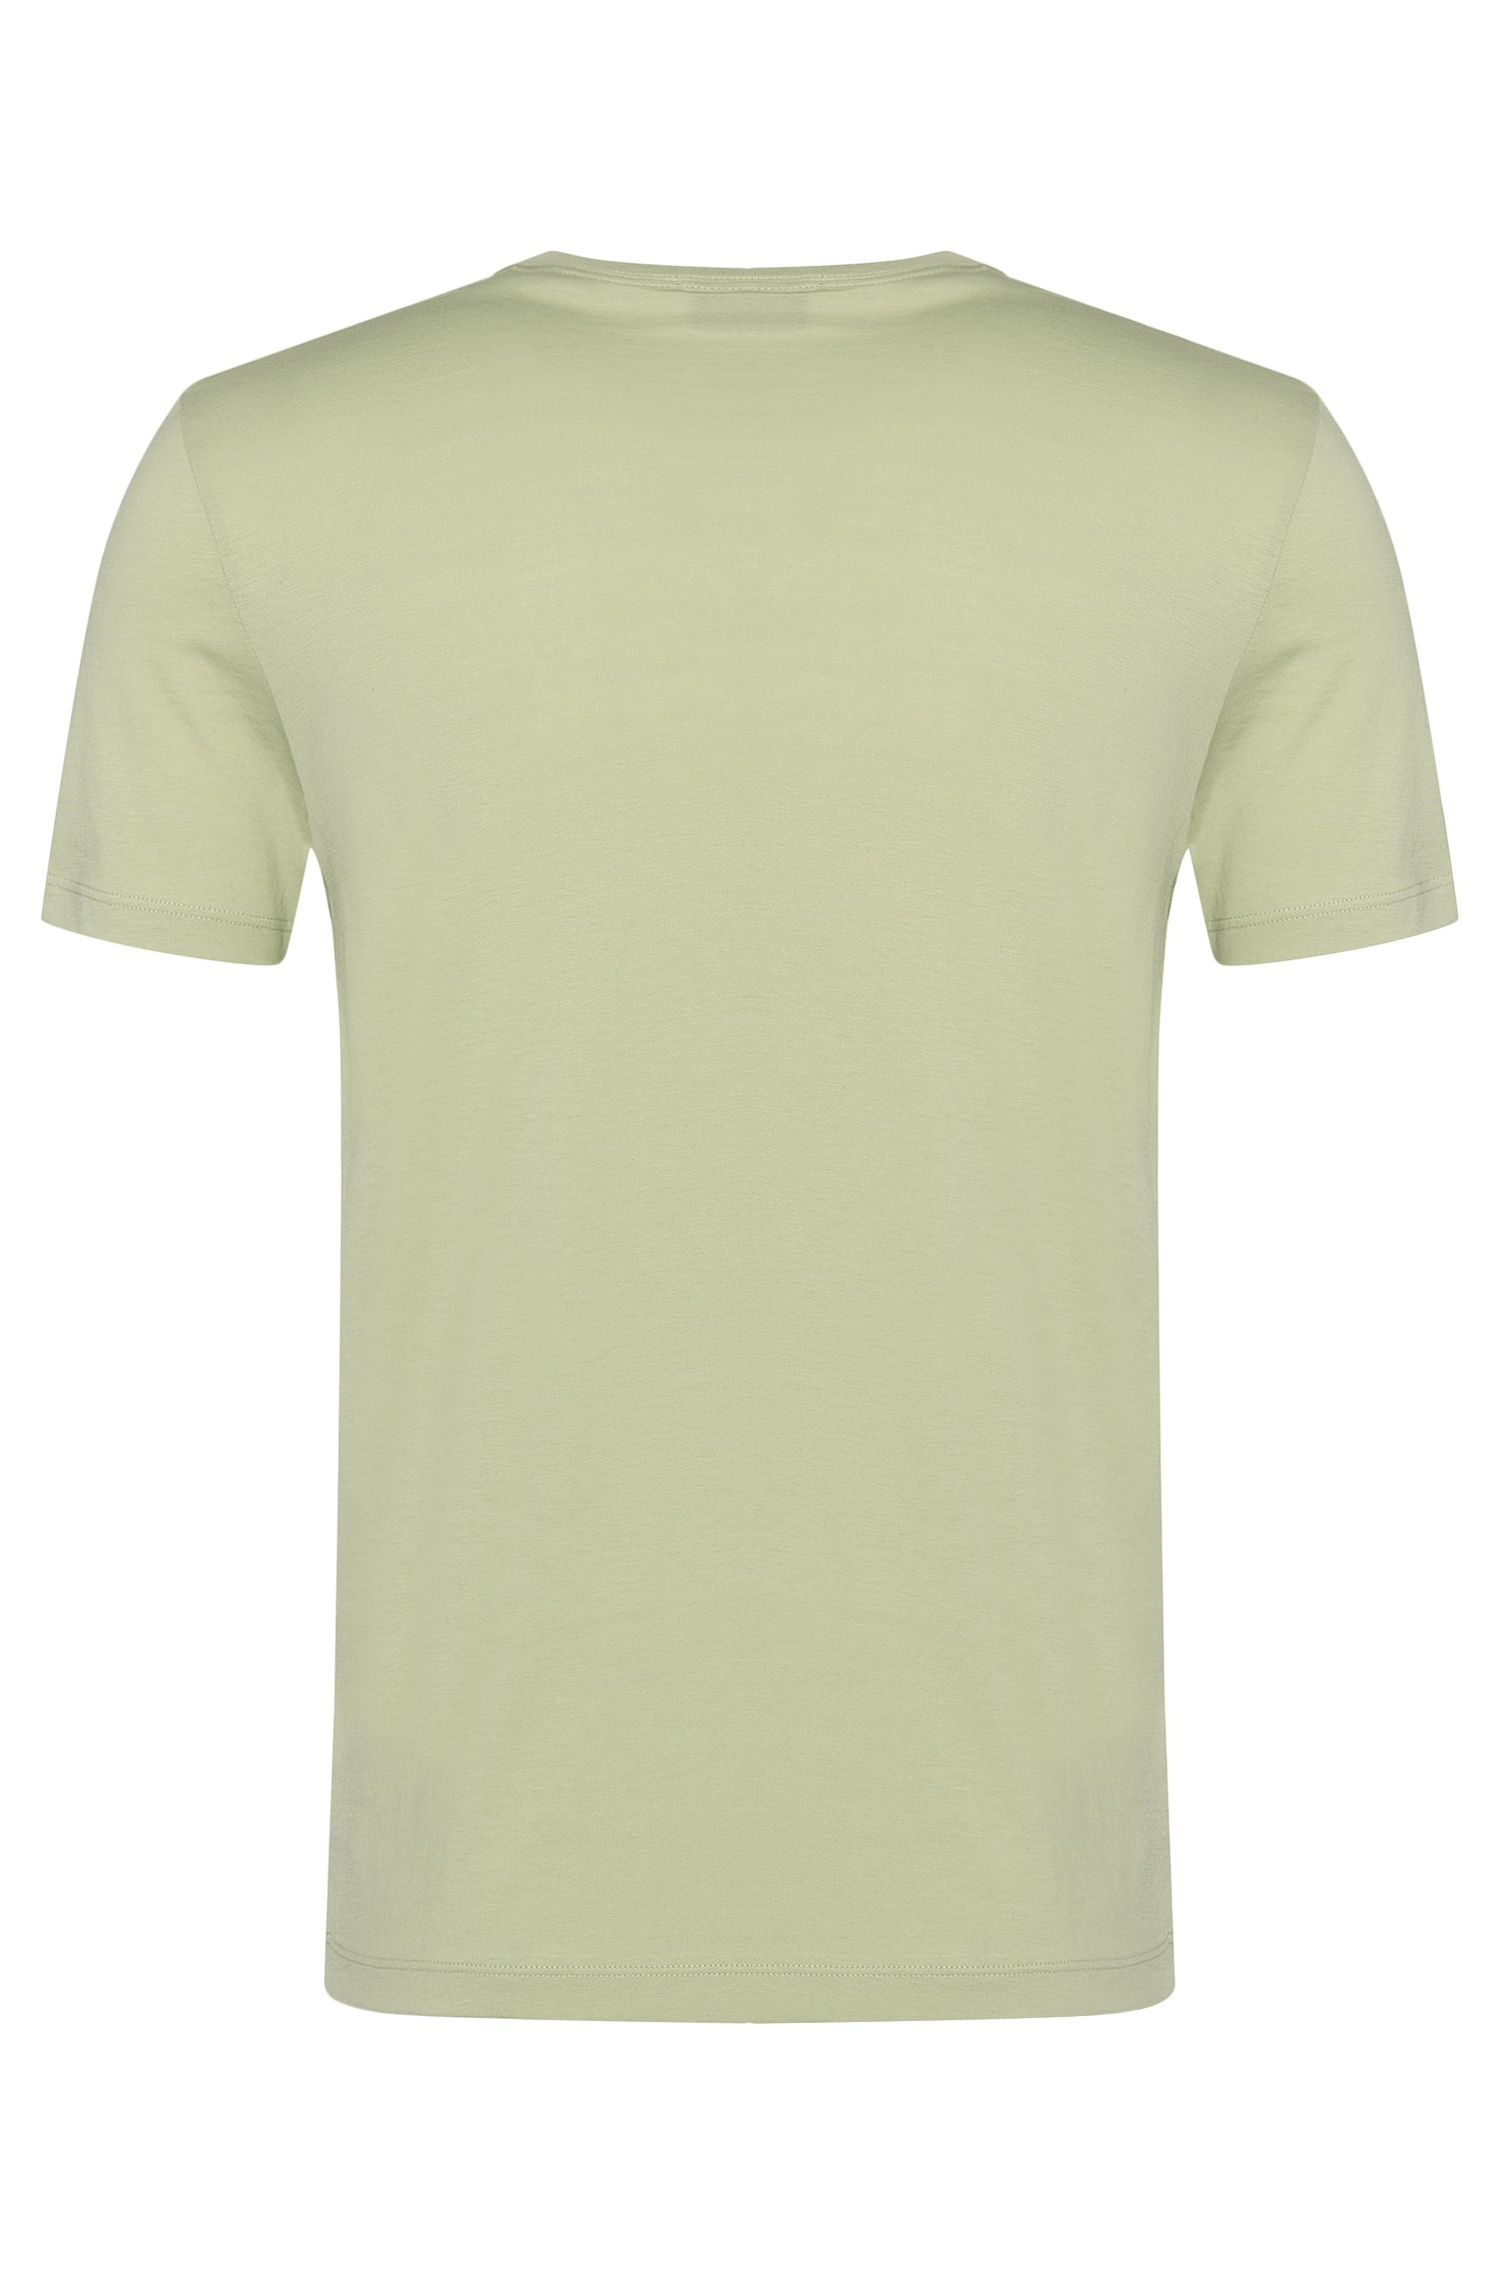 T-shirt Slim Fit en coton, à col V : « Teal 11 »